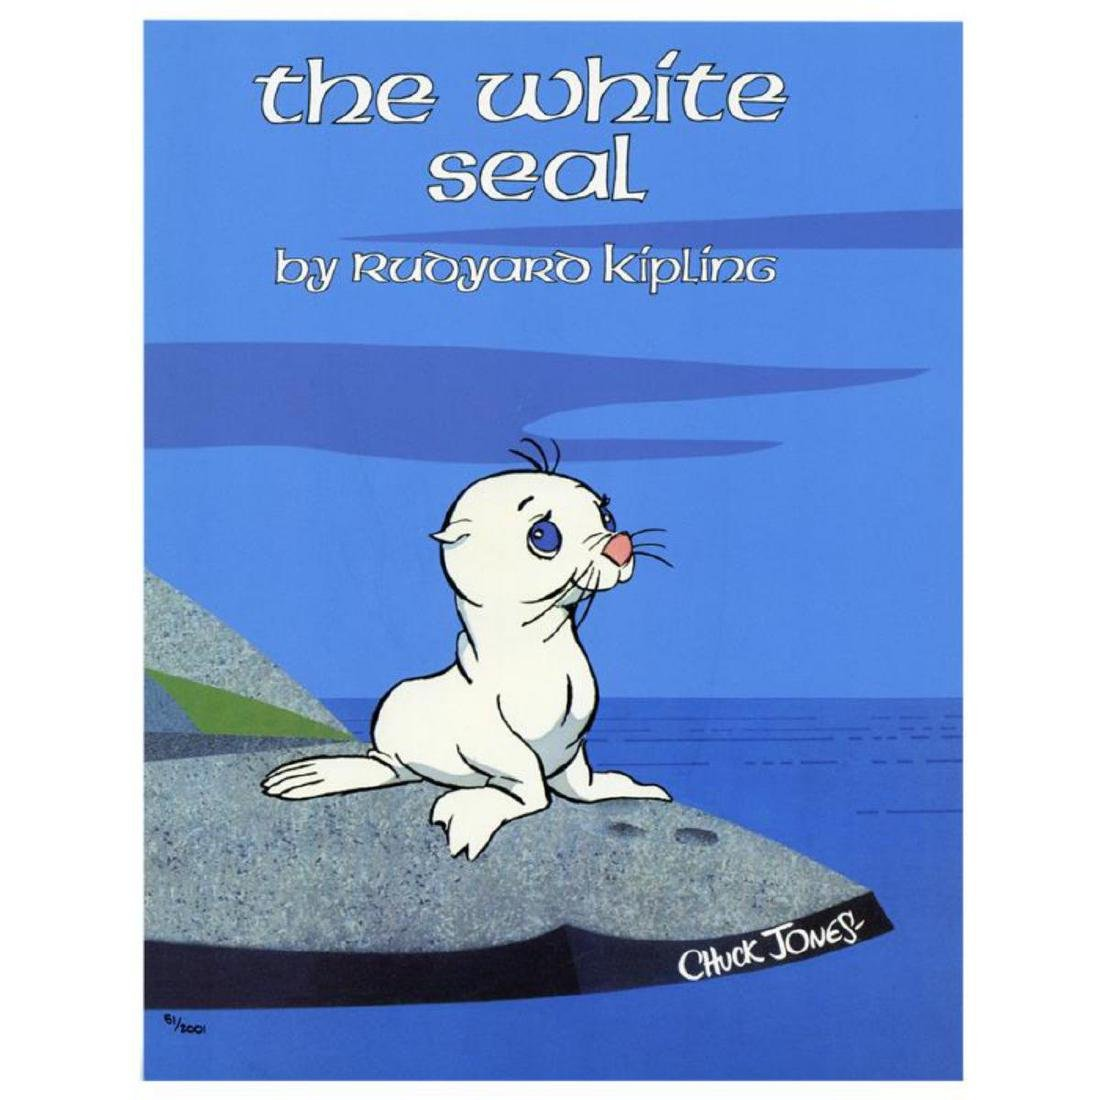 "Chuck Jones ""The White Seal"" Limited Edition"